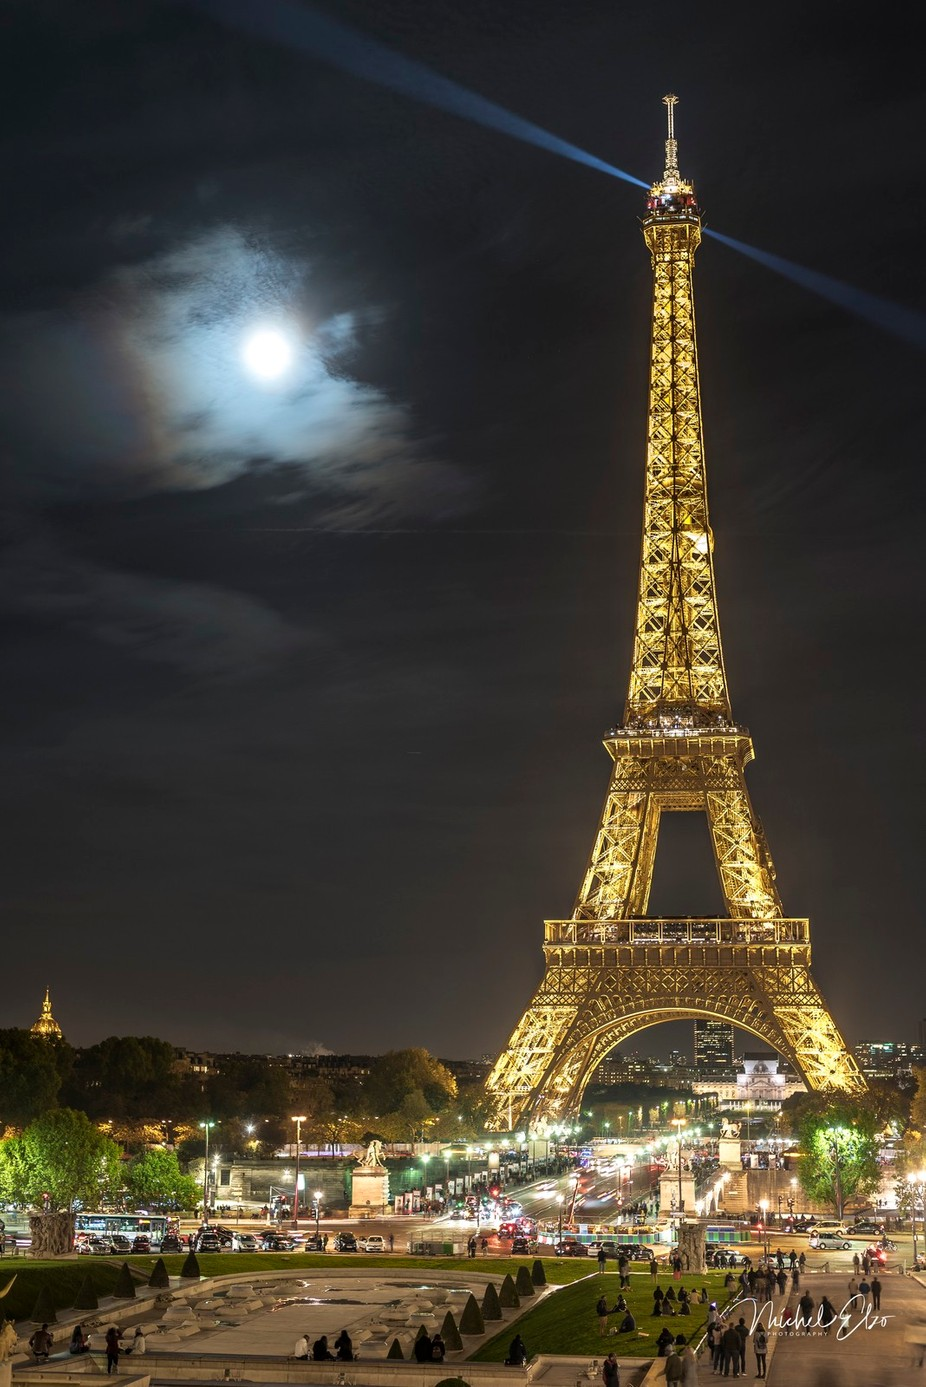 The beauty of Paris at night by Elzo78 - Paris Photo Contest